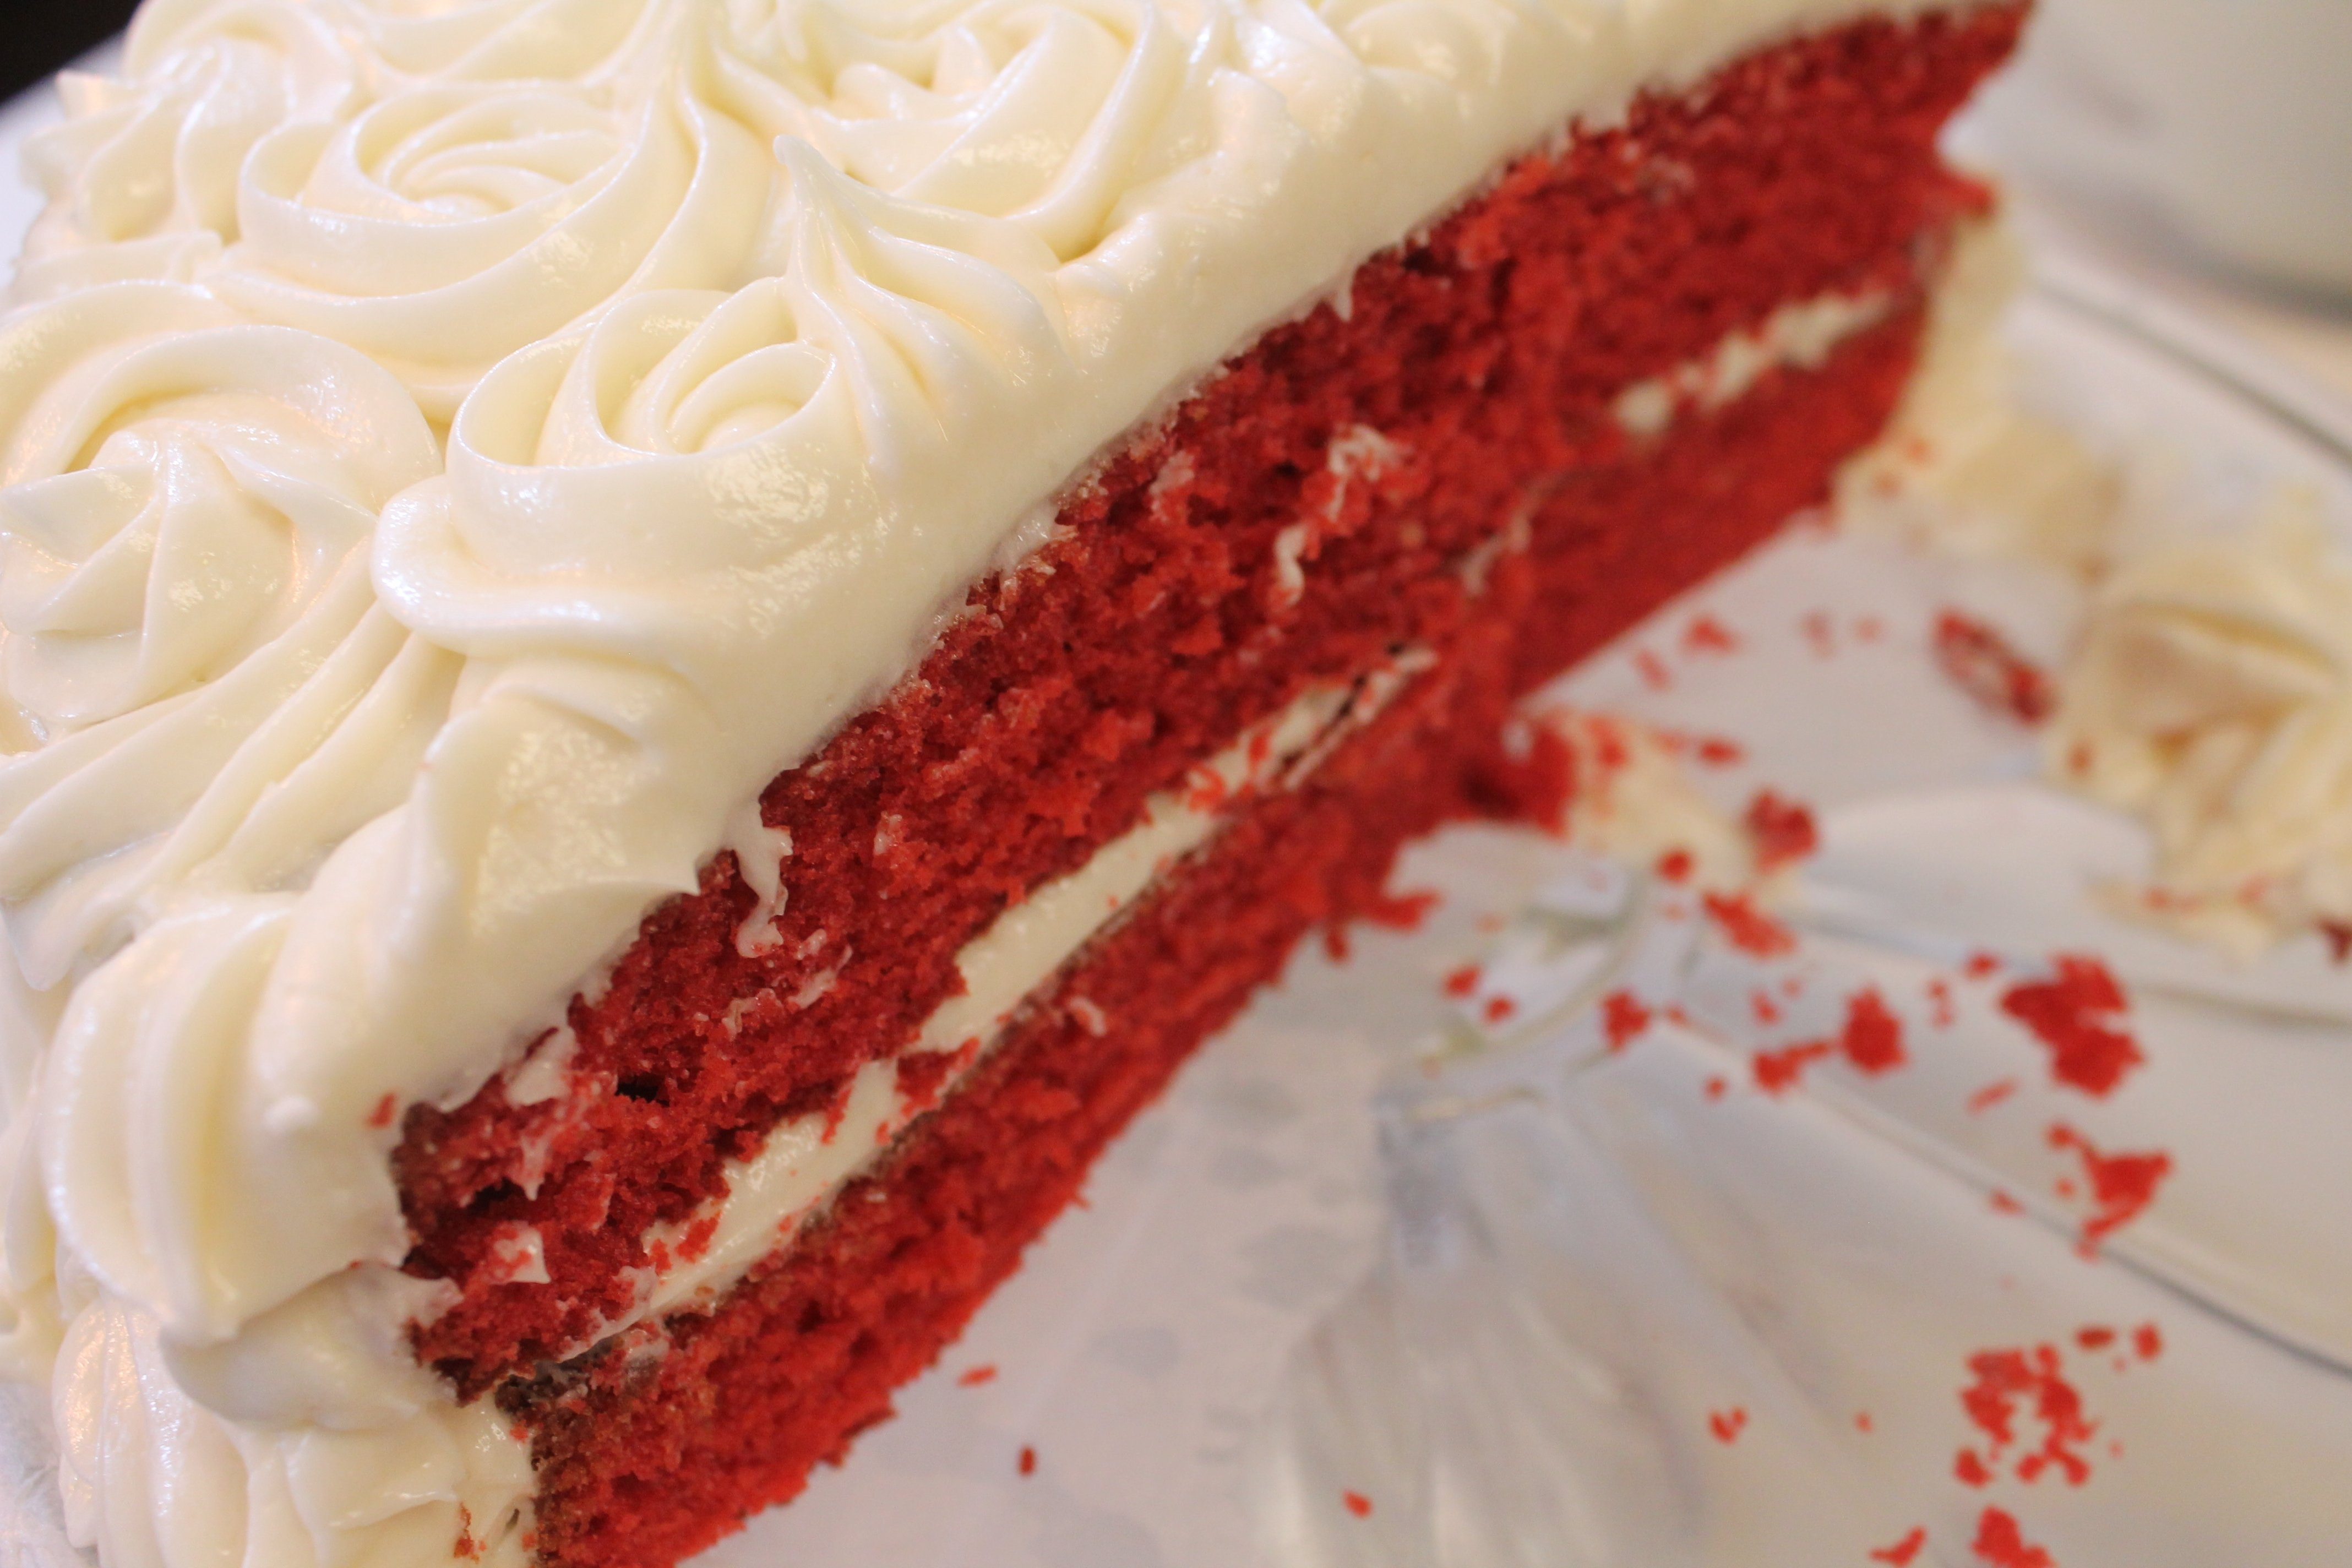 10 Amazing Red Velvet Cake Decorating Ideas red velvet cake recipe i heart recipes 1